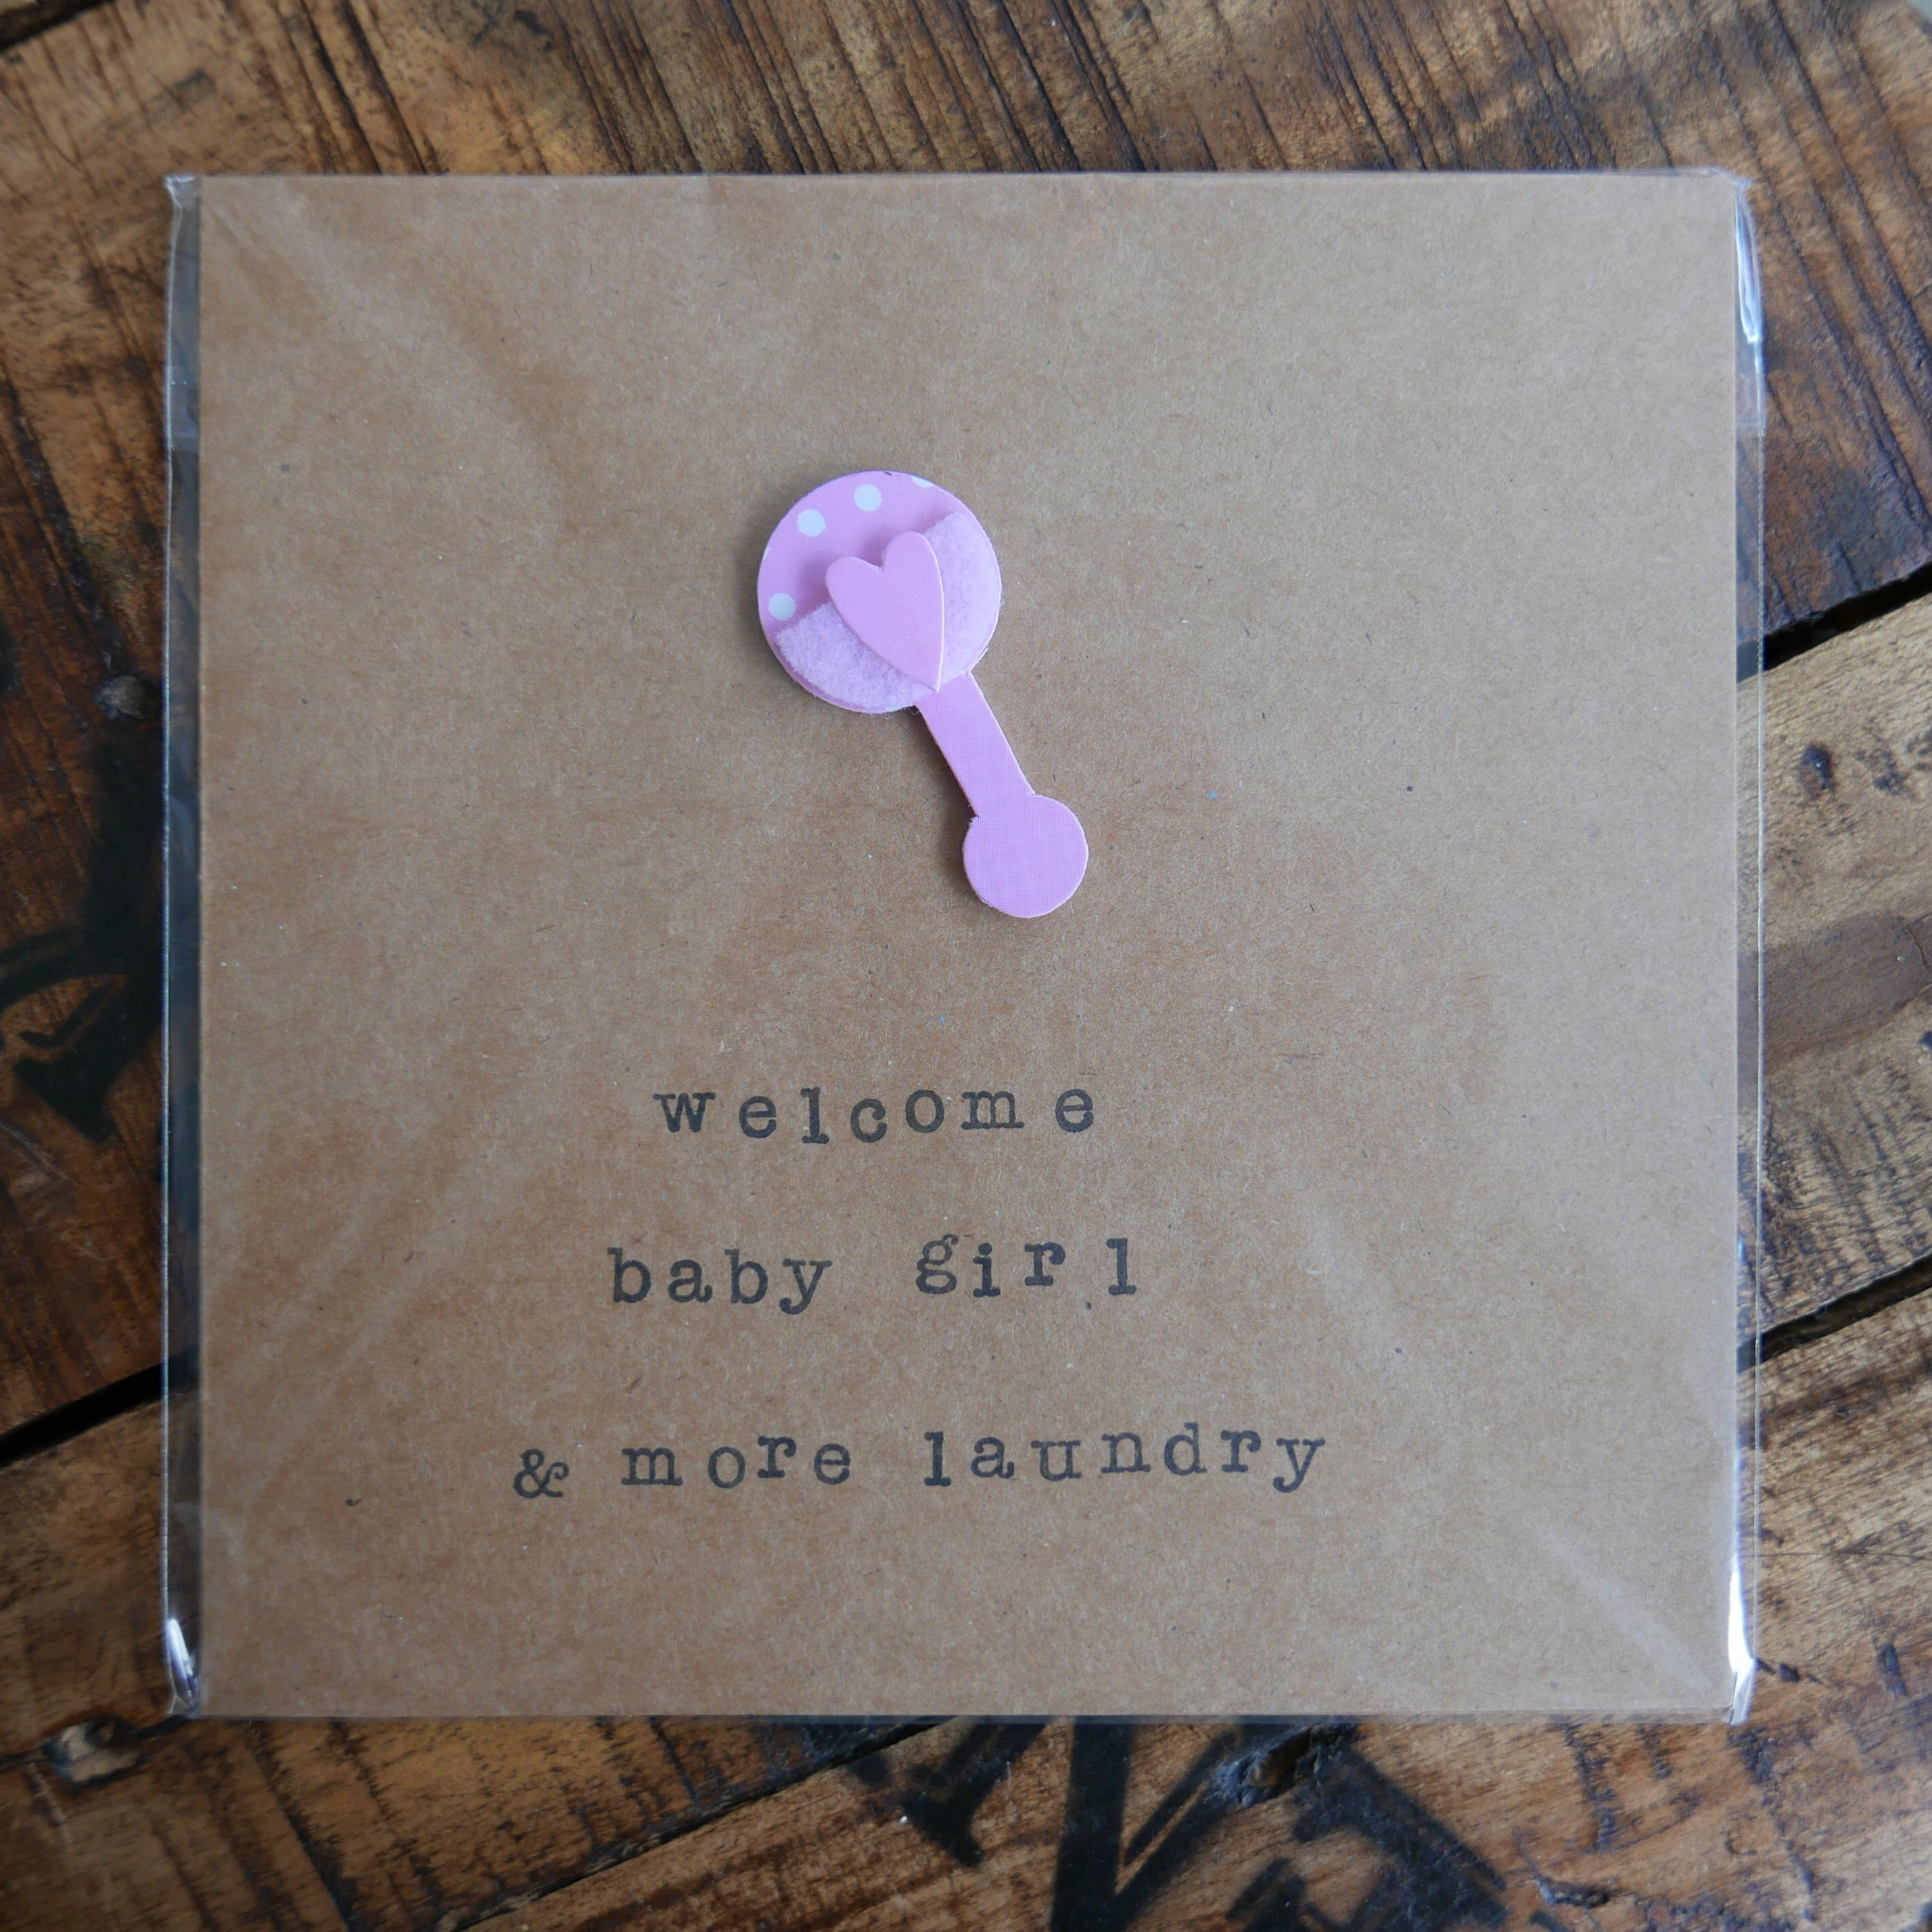 Welcome Baby Girl & More Laundry - Greeting Card